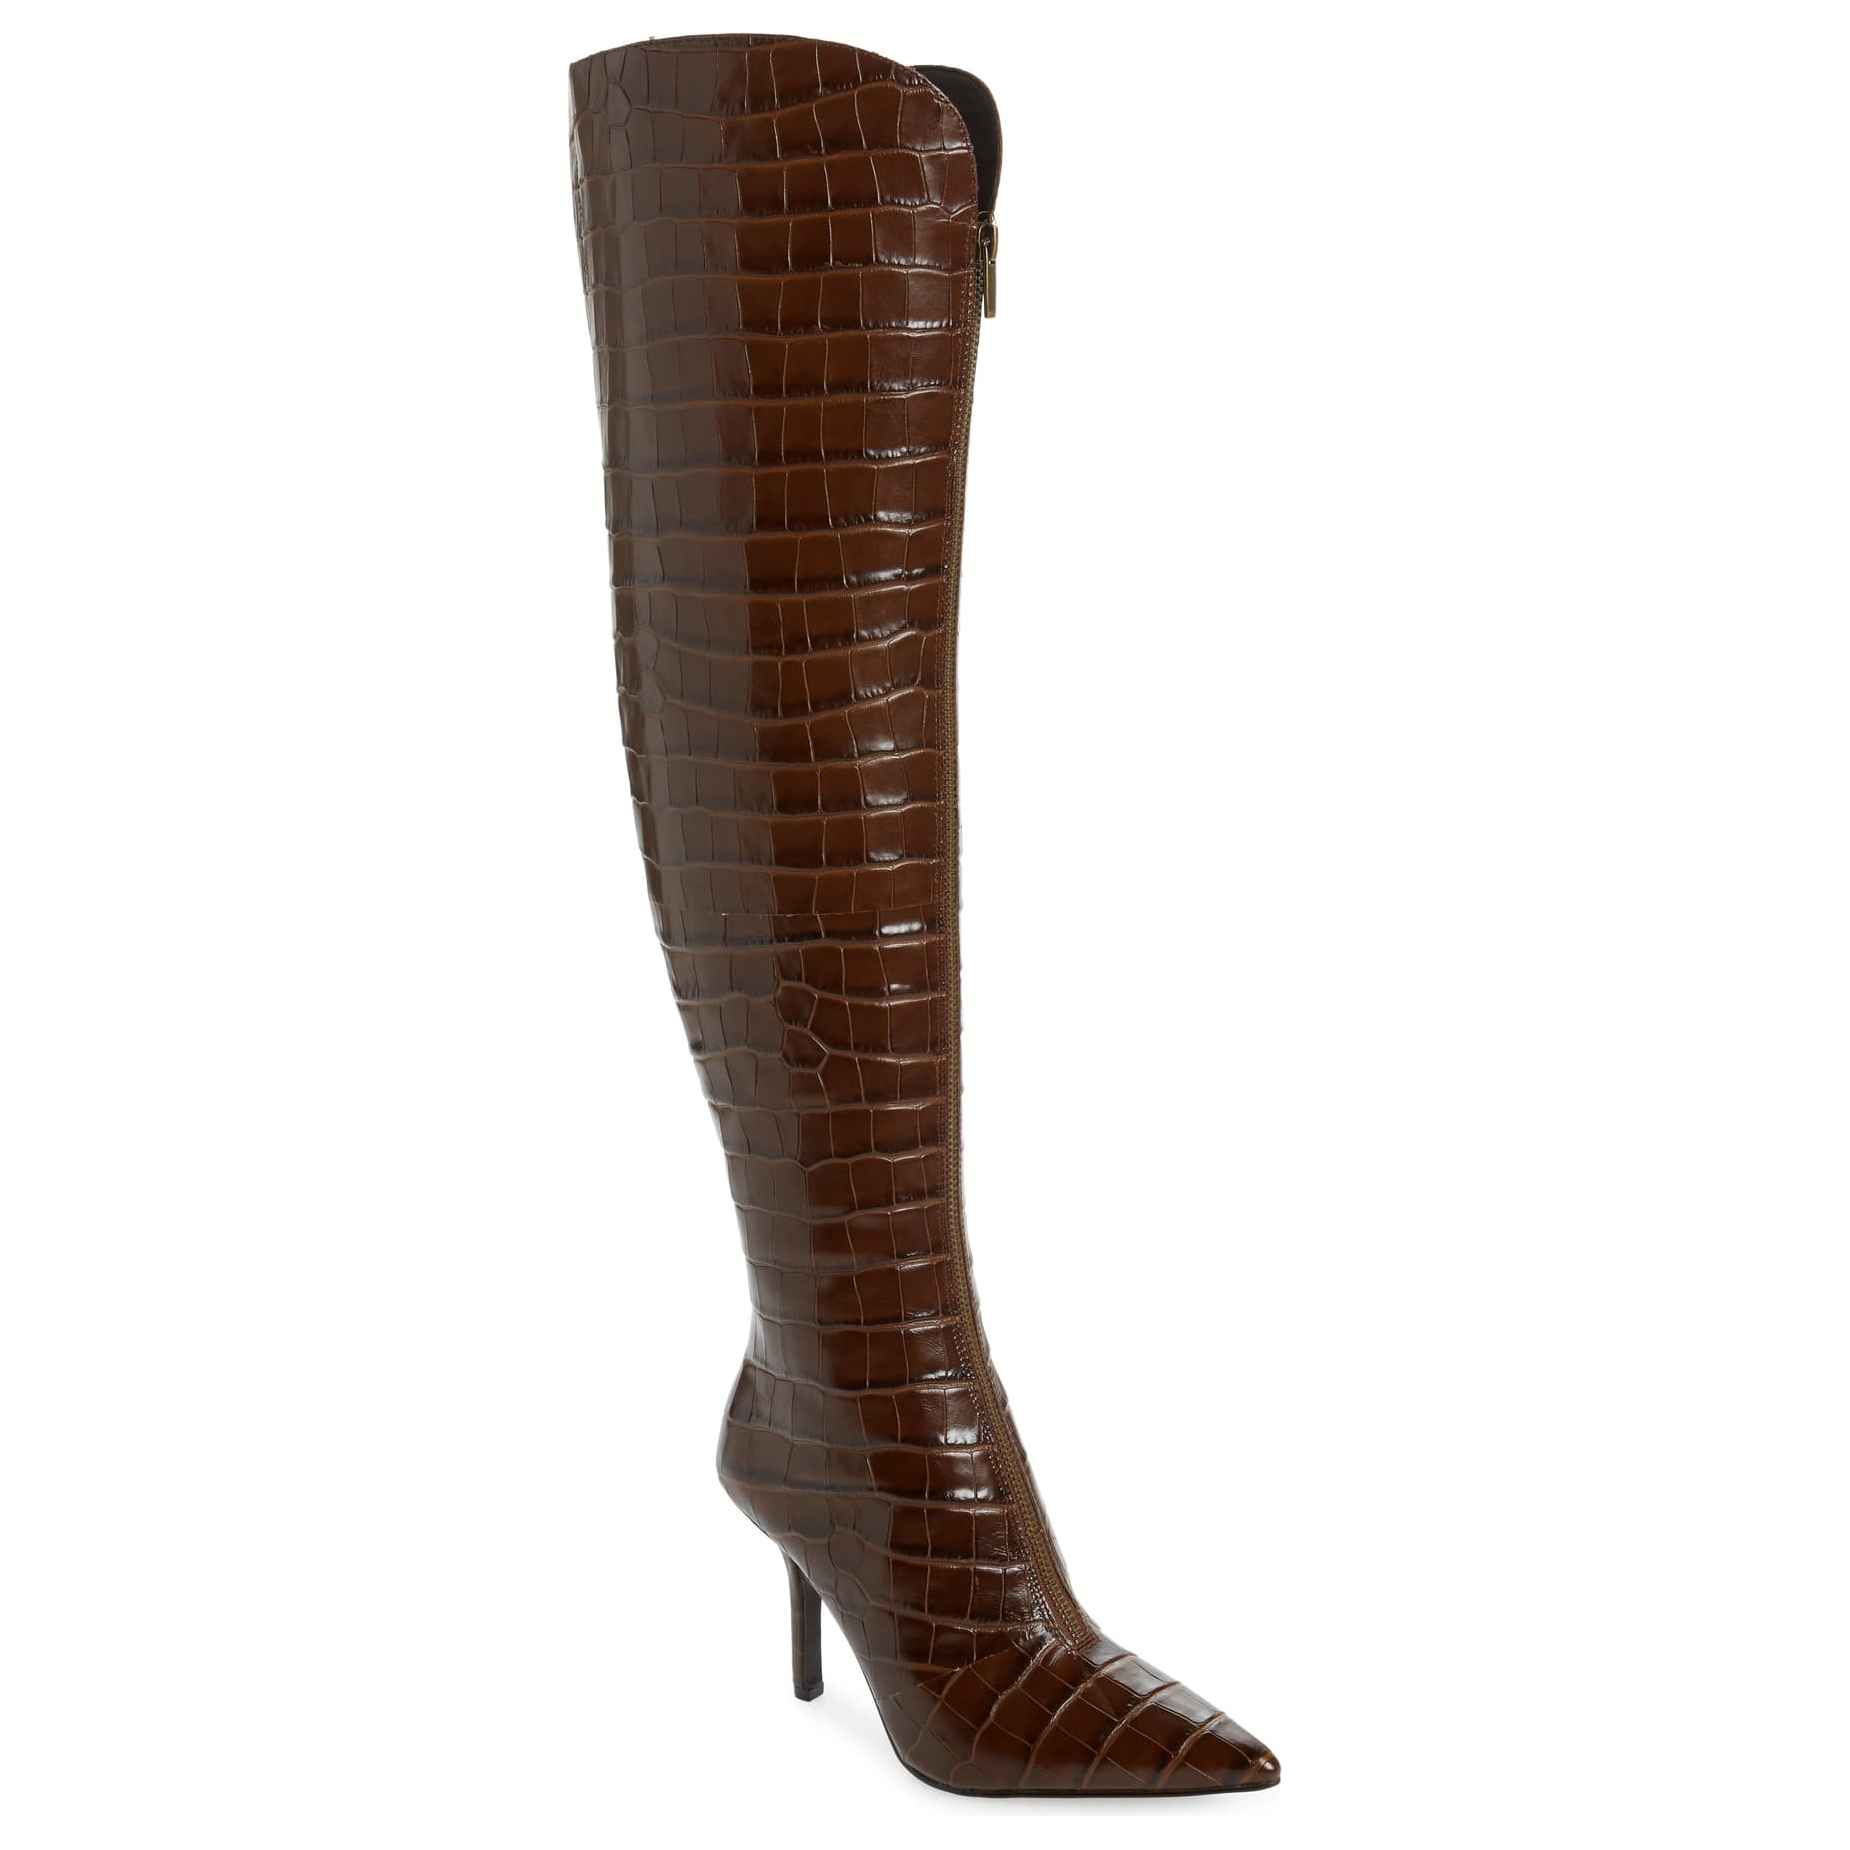 Vince Camuto Naomina Over the Knee Boot Chocolate Brown